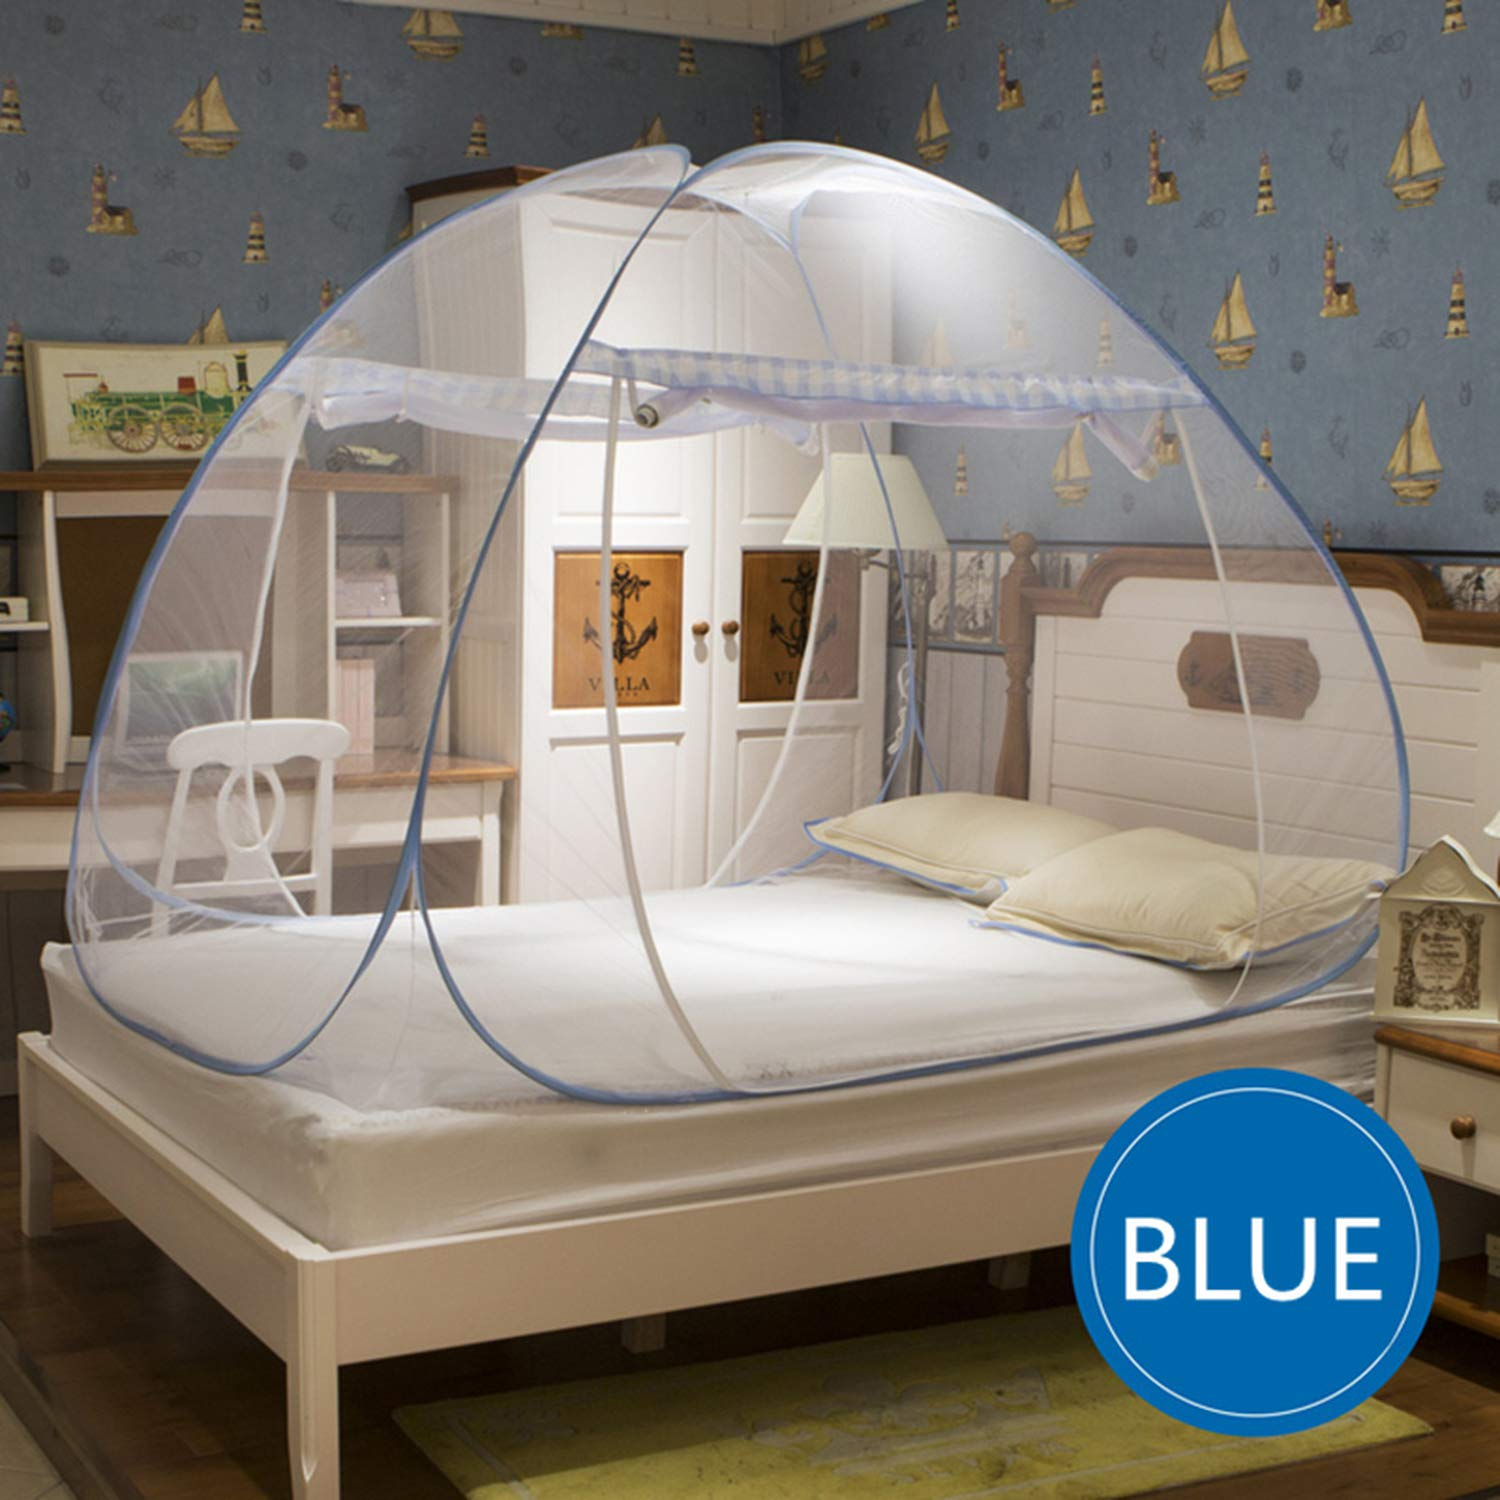 Portable Round Mosquito Net for Single Double Bed Adults Bed Canopy Home Bug Insect Bed Tent Anti Mosquito Mesh Netting klamboe,Brown,1.8m (6 feet) Bed by SuWuan mosquito net (Image #2)